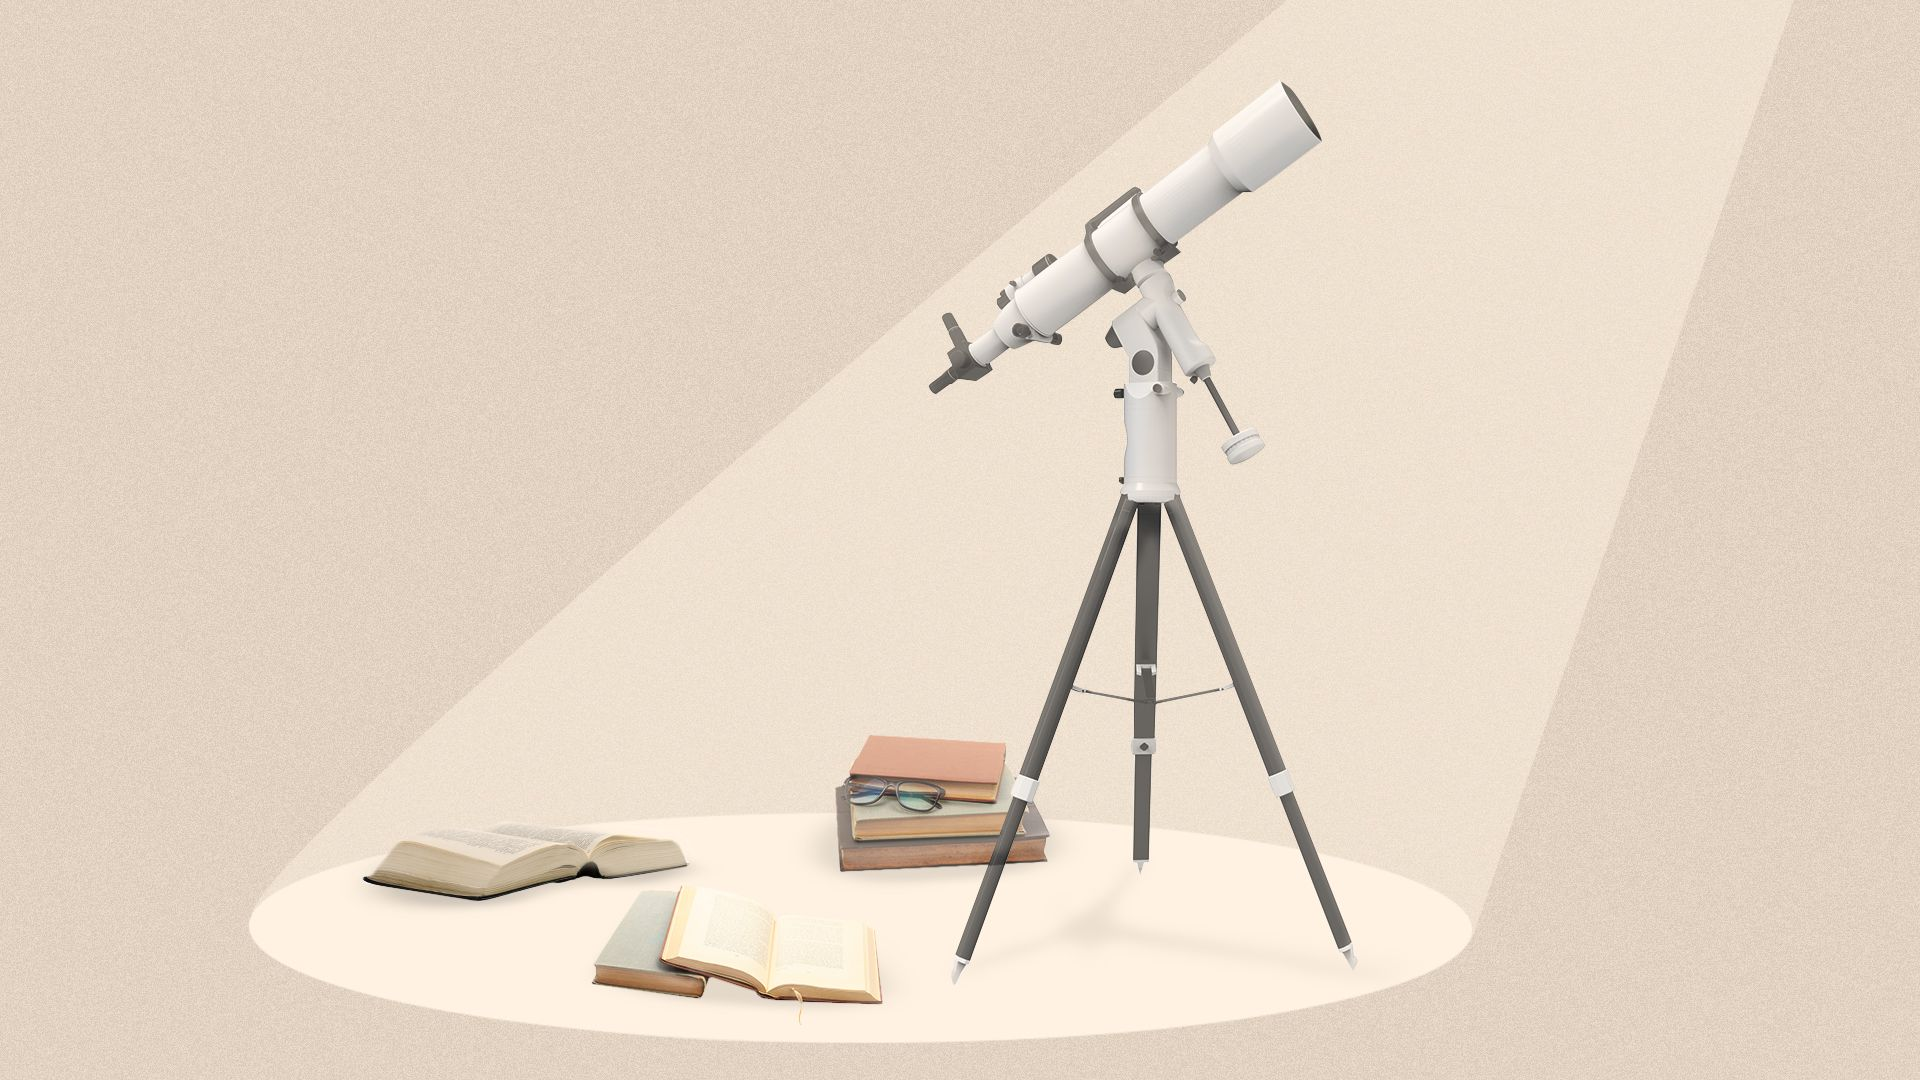 Illustration of a telescope and open books in a spotlight.